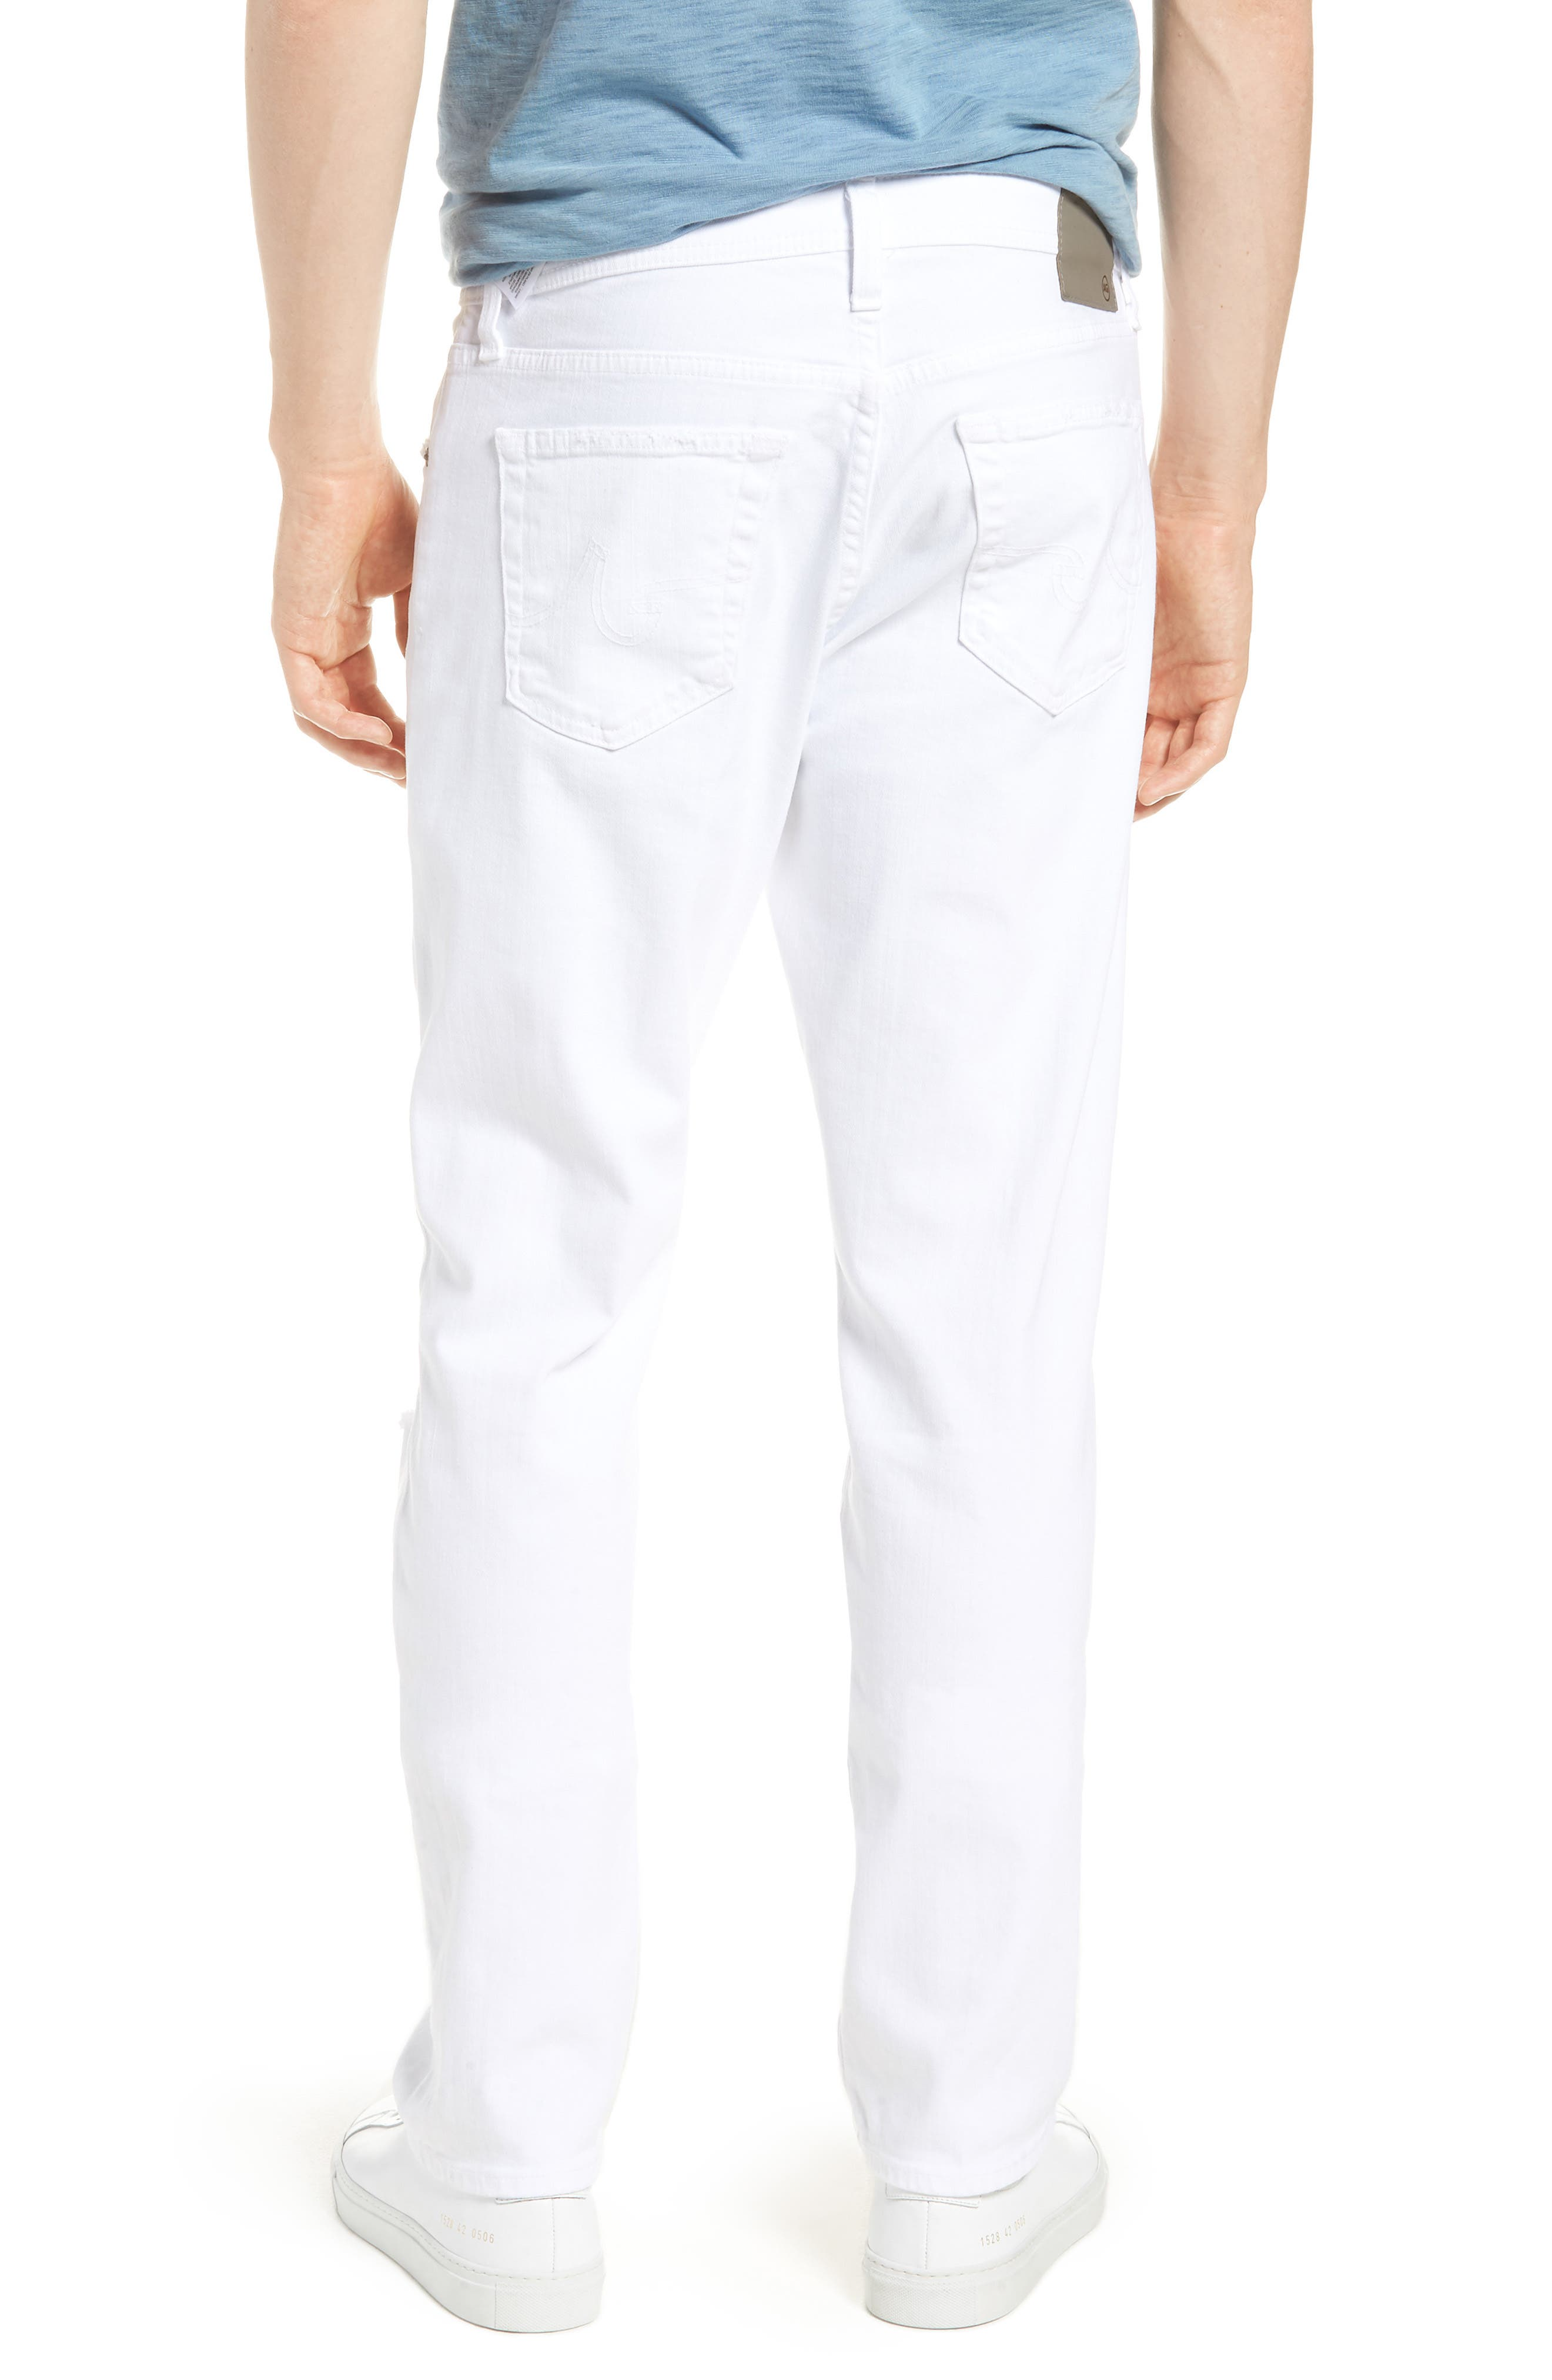 Everett Slim Straight Leg Jeans,                             Alternate thumbnail 2, color,                             White Crash